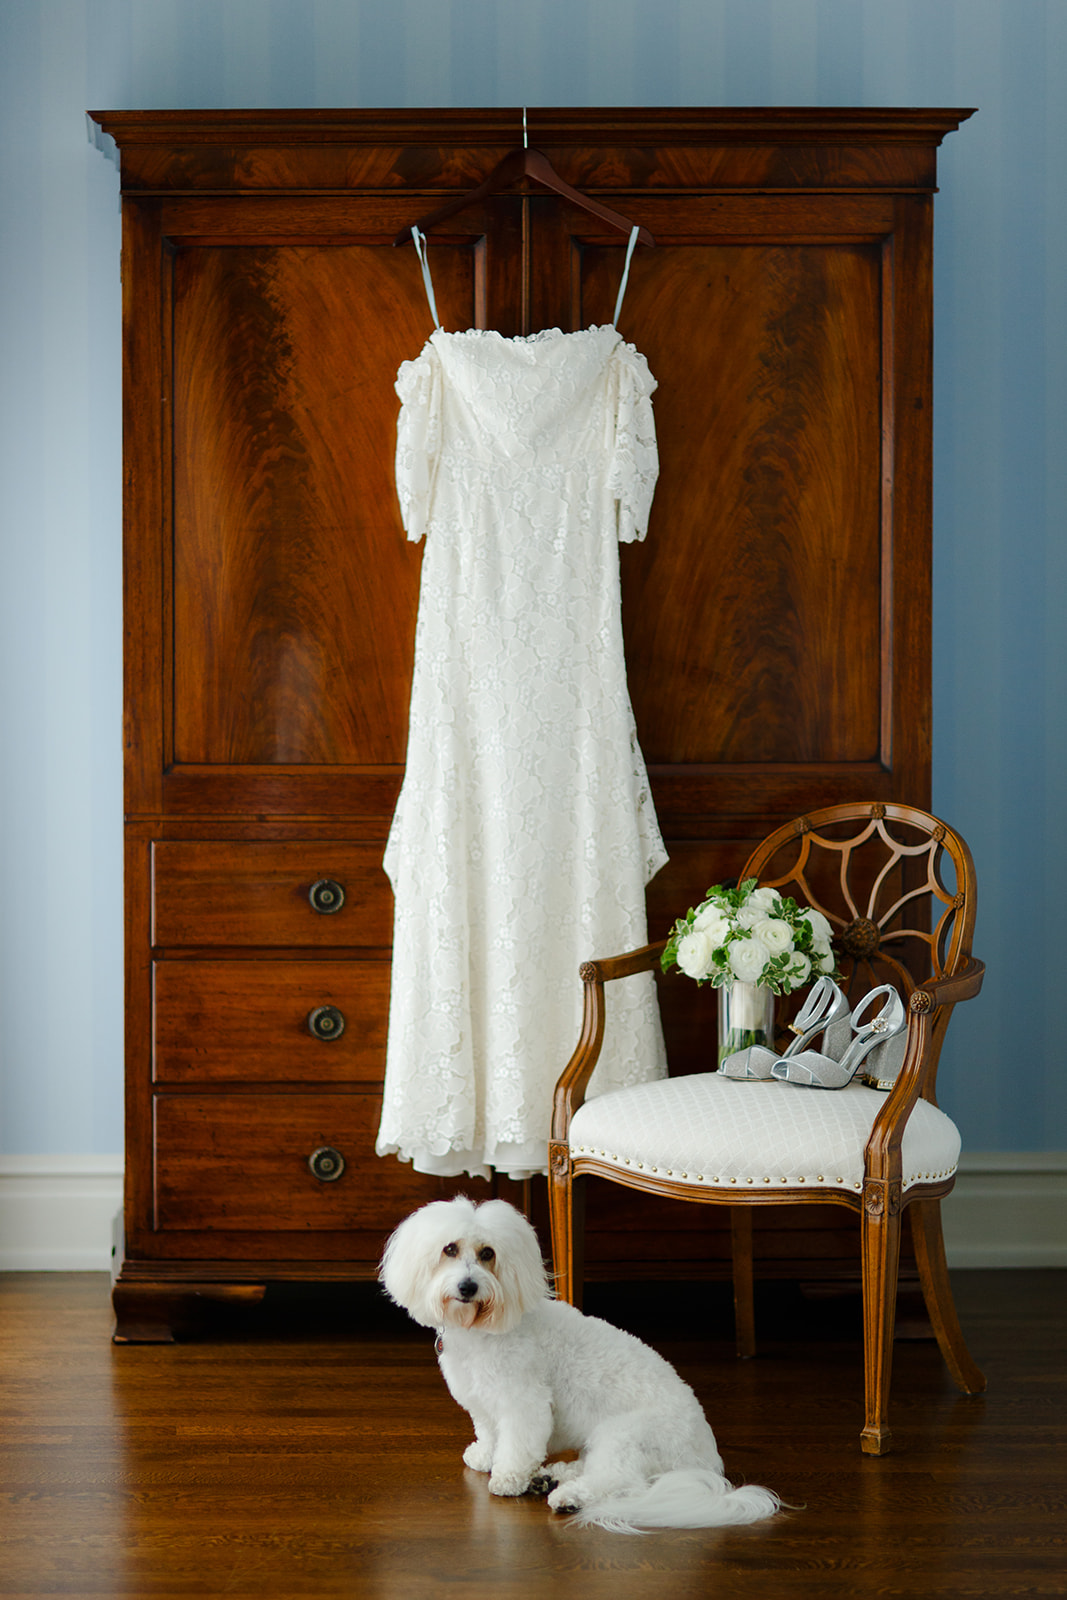 The couple's dog joined for the entire day and popped in and out of photos as he pleased. He posed so perfectly for this photo with the vignette of the bride's gown and accessories.